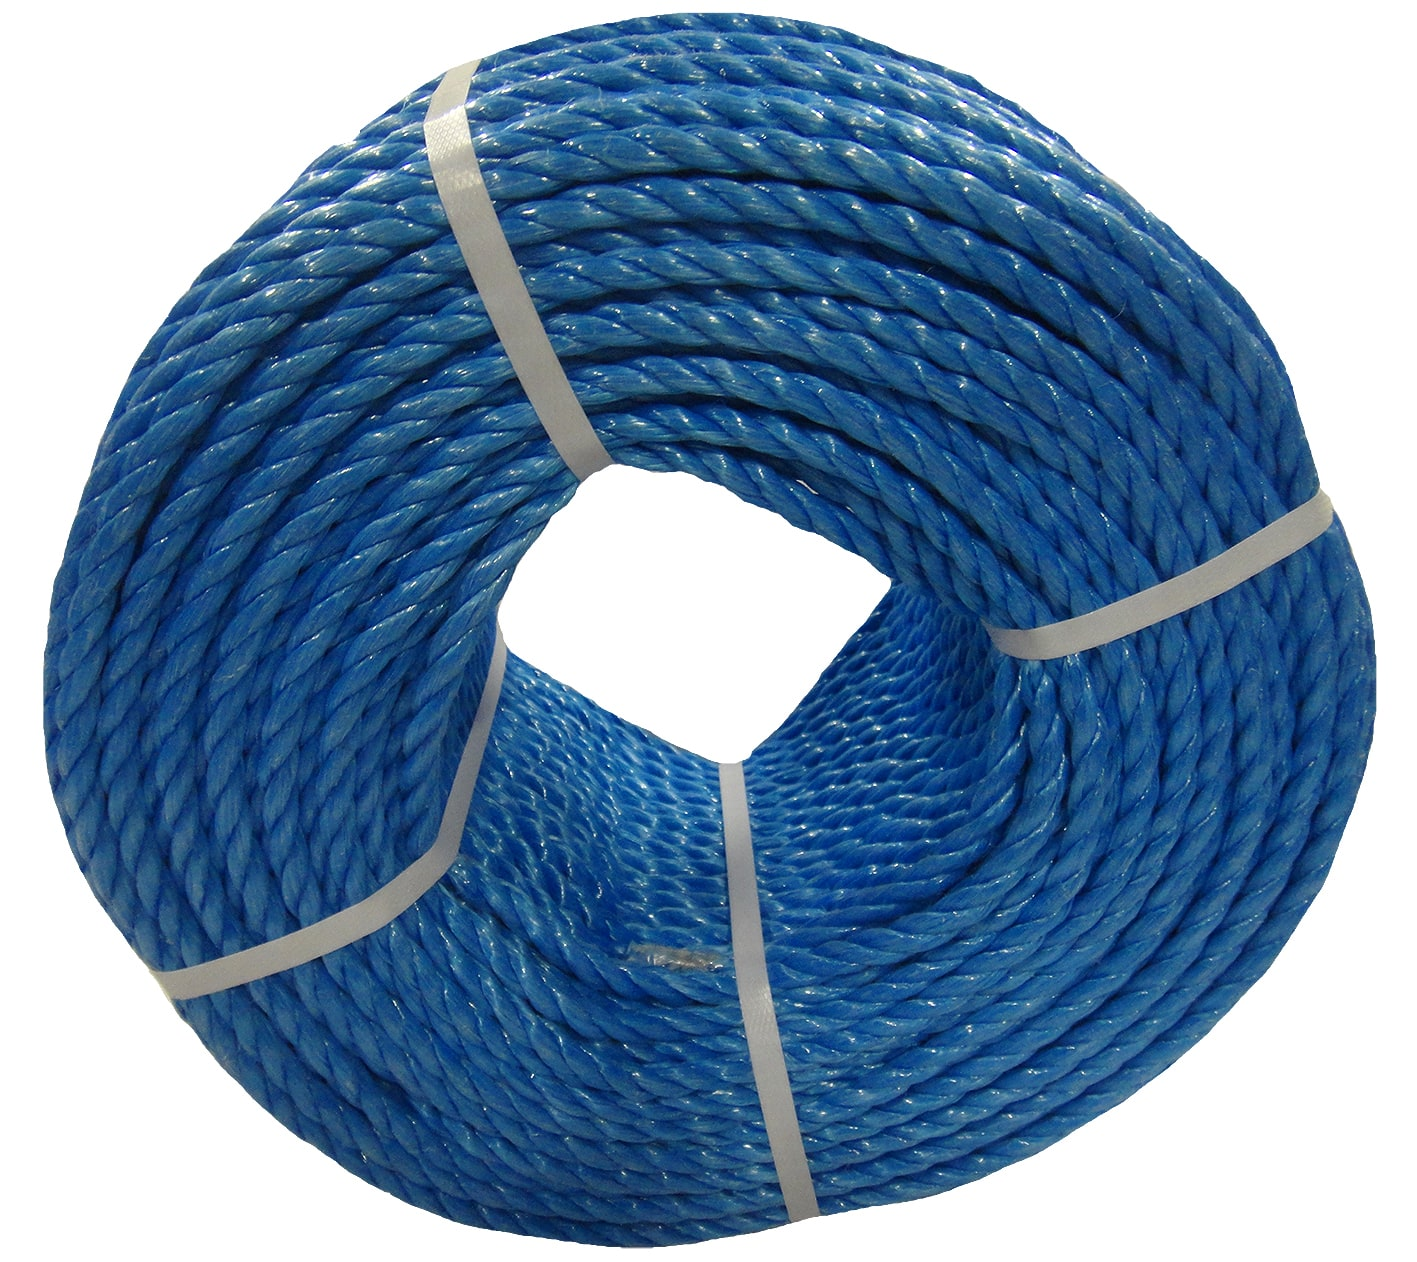 Polypropylene rope - 8mm Dia Blue x 100m Mini Coil